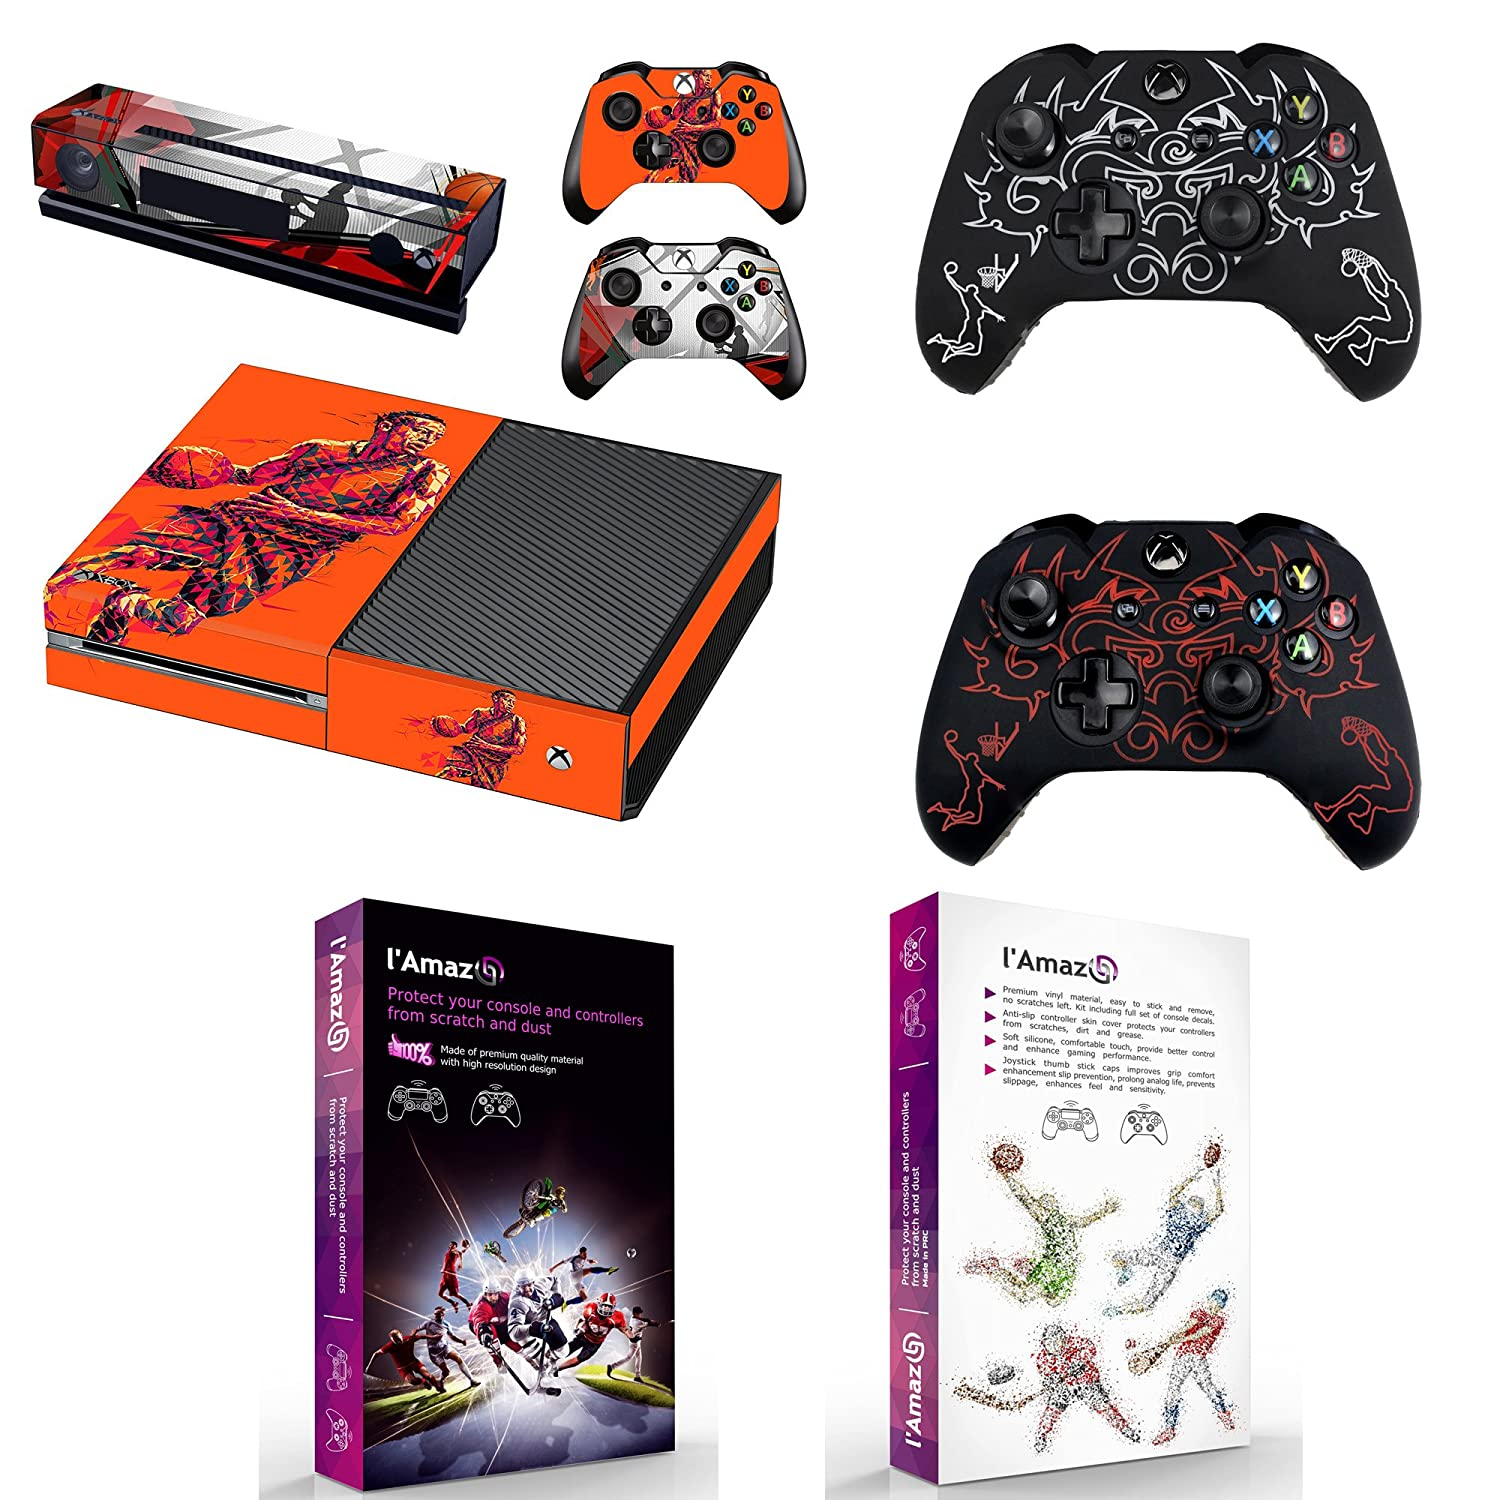 Lamazo custom protective xbox one skins bundle gift set of console vinyl decals stickers and 2x controller silicone cover cases in retail box gamer kit